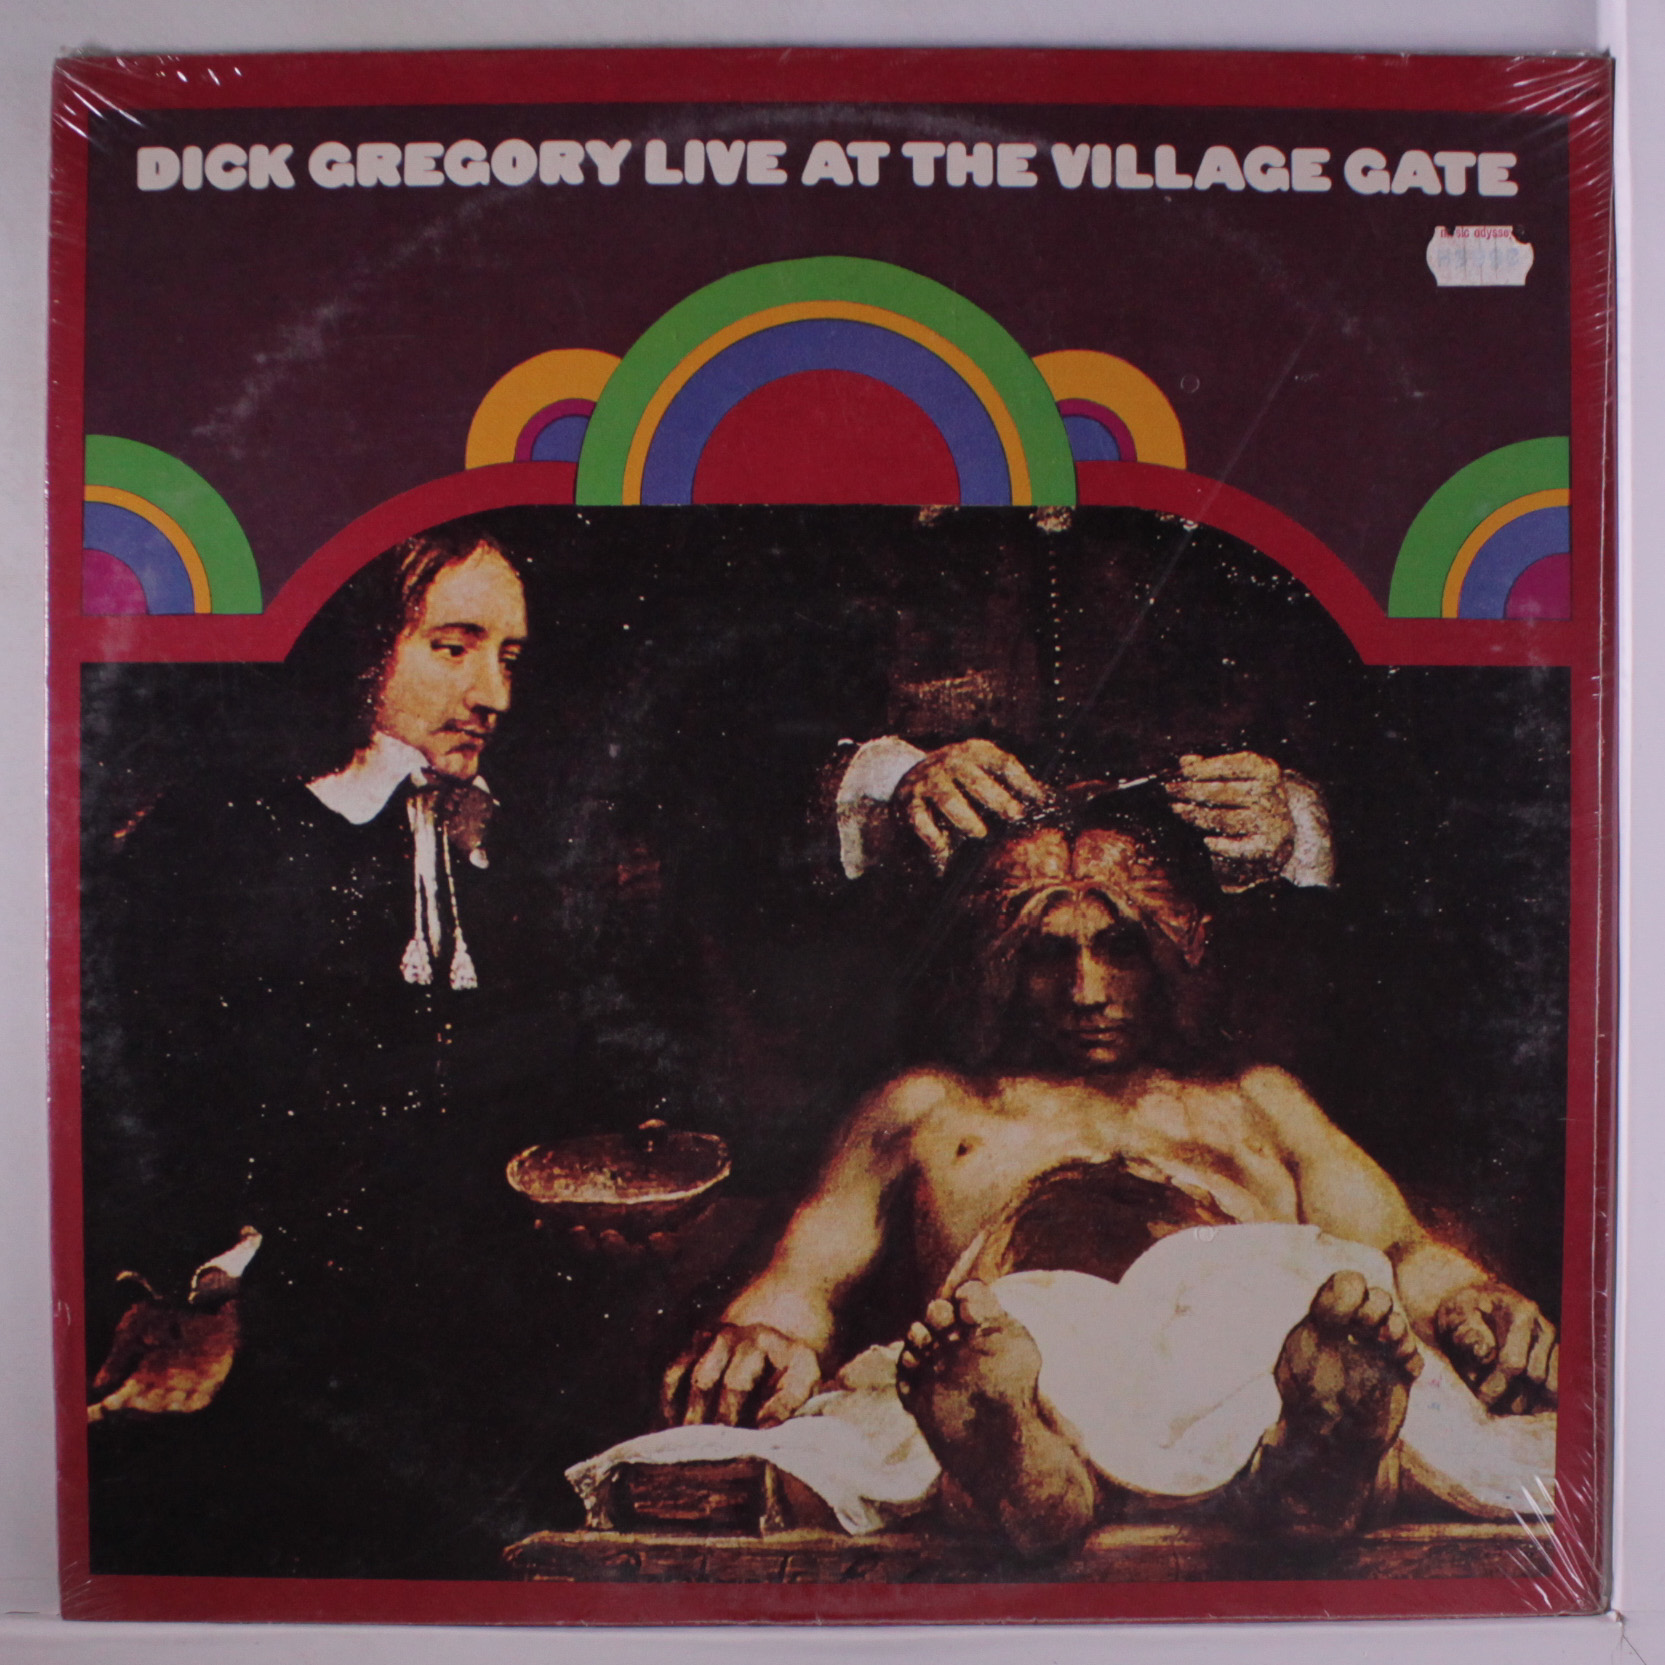 Dick Gregory Live at the Village Gate